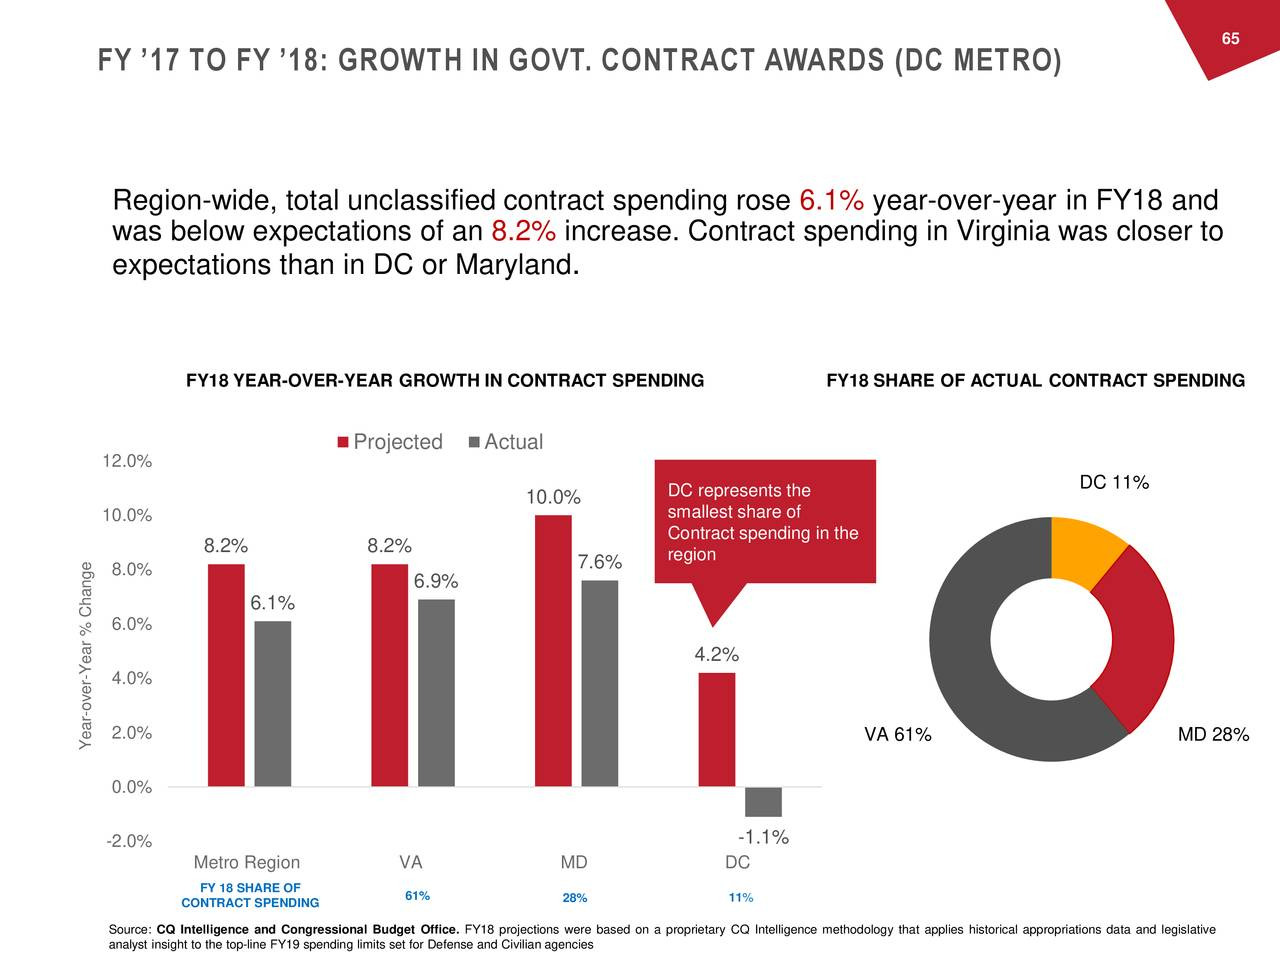 FY '17 TO FY '18: GROWTH IN GOVT. CONTRACT AWARDS (DC METRO) Region-wide, total unclassified contract spending rose 6.1% year-over-year in FY18 and was below expectations of an 8.2% increase. Contract spending in Virginia was closer to expectations than in DC or Maryland . FY18 YEAR-OVER-YEAR GROWTH IN CONTRACT SPENDING FY18 SHARE OF ACTUAL CONTRACT SPENDING Projected Actual 12.0% DC represents the DC 11% 10.0% 10.0% smallest share of Contract spending in the 8.2% 8.2% region 8.0% 7.6% 6.9% 6.1% 6.0% 4.2% -e4.0% Change -ver 2.0% VA 61% MD 28% Year 0.0% -1.1% -2.0% Metro Region VA MD DC FY 18 SHARE OF CONTRACT SPENDING 61% 28% 11% Source: CQ Intelligence and Congressional Budget Office. FY18 projections were based on a proprietary CQ Intelligence methodology that applies historical appropriations data and legislative analyst insight to the top-line FY19 spending limits set for Defense and Civilian agencies